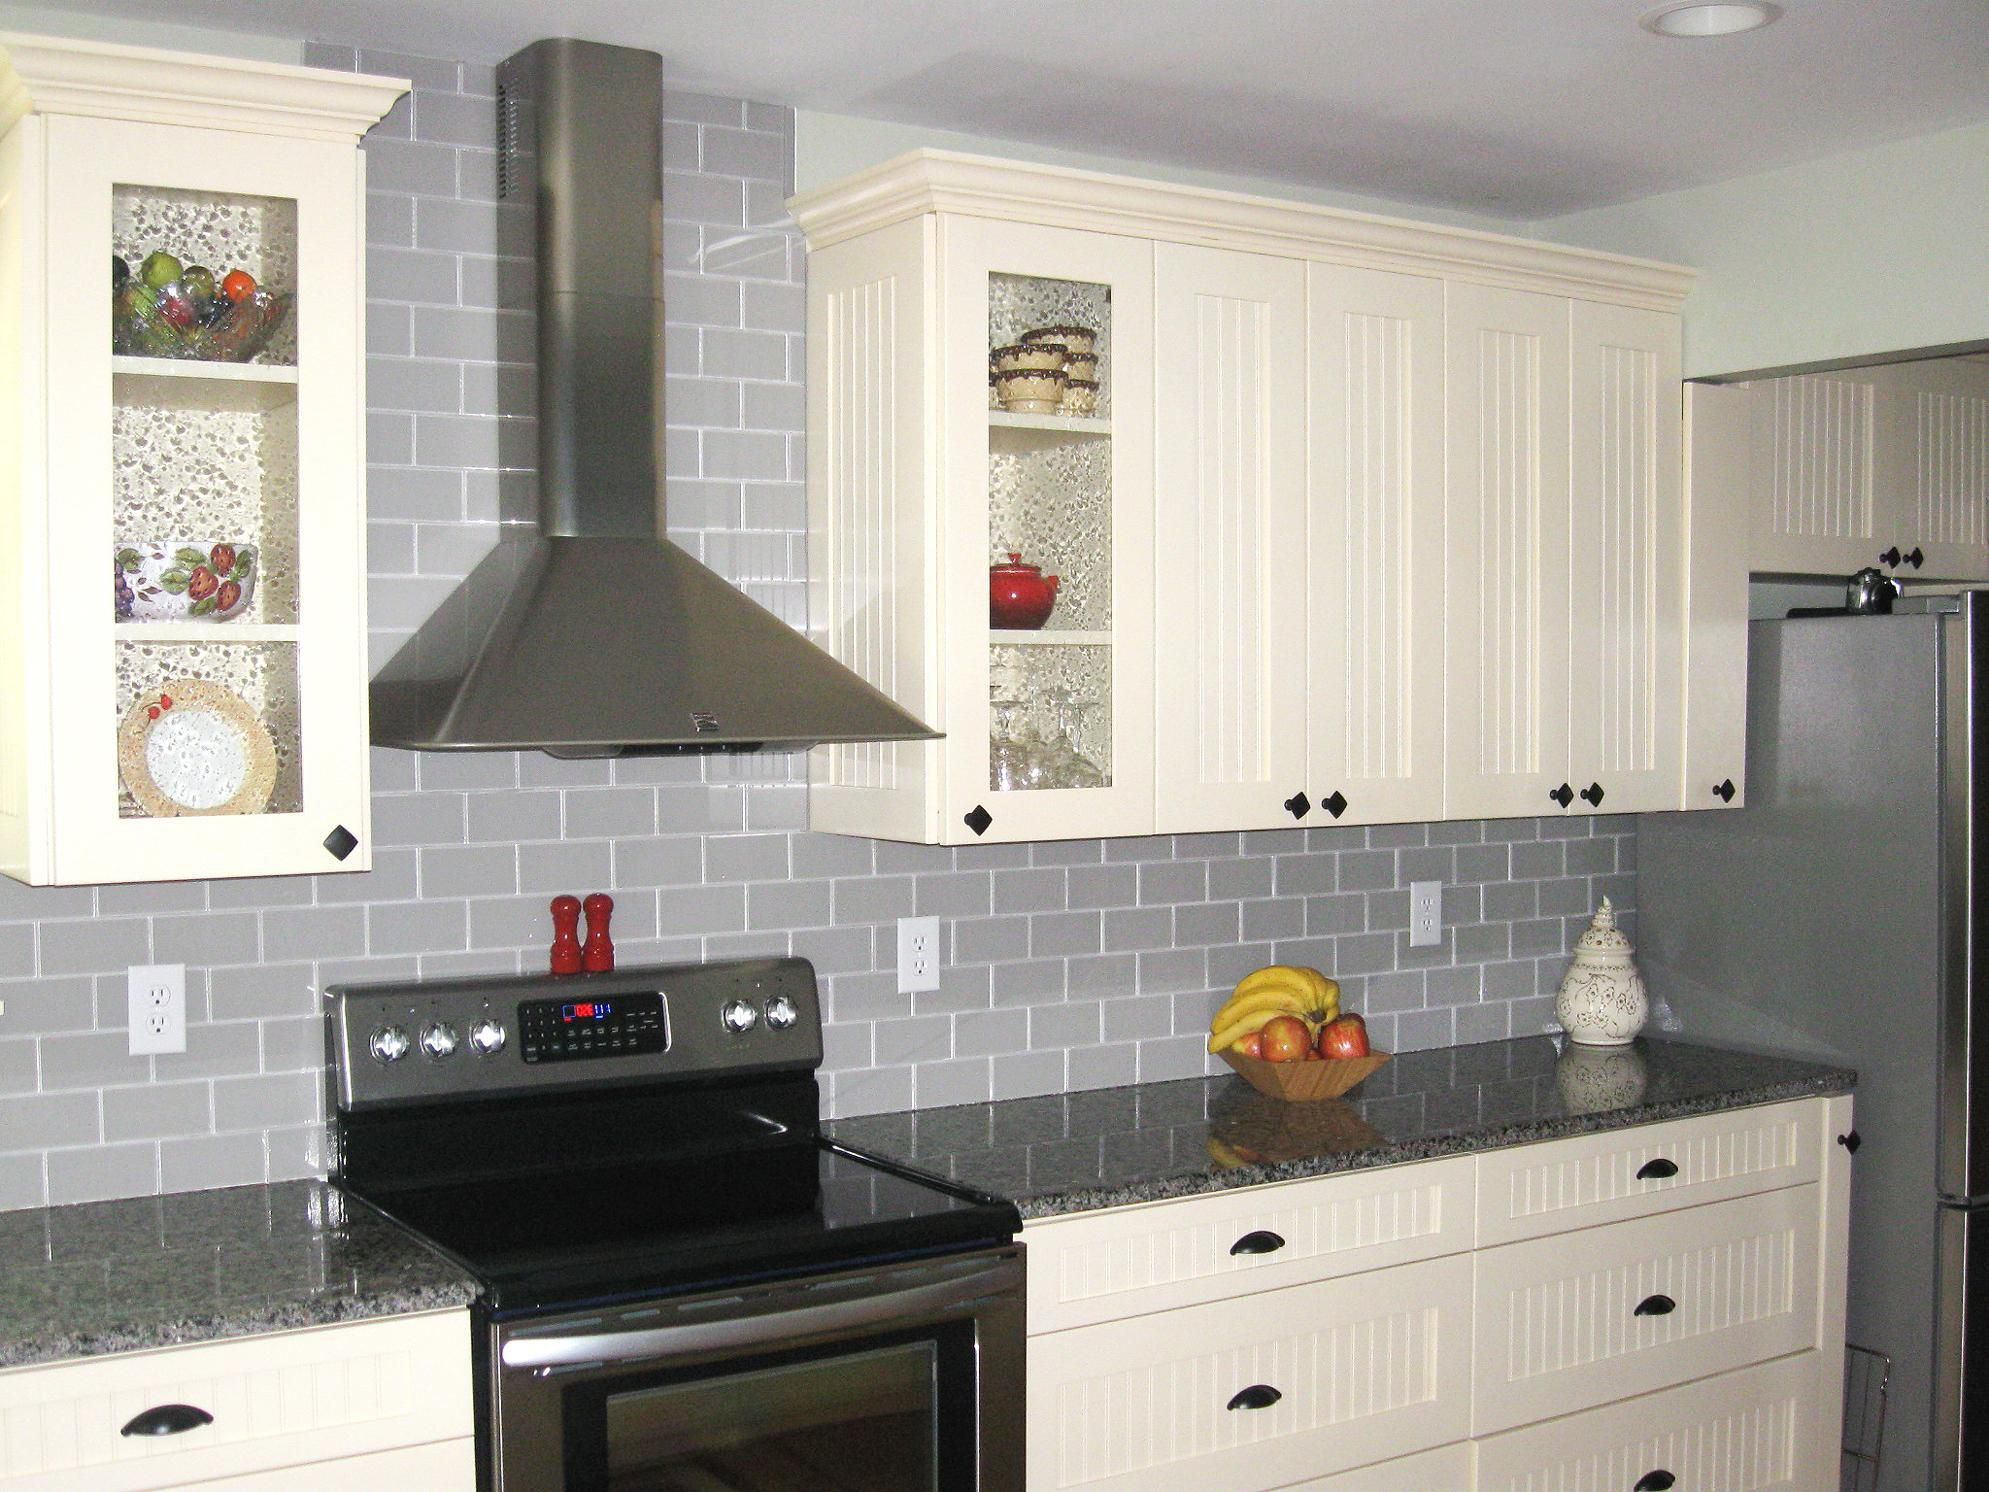 White Kitchen Cabinet Ideas Black And Grey Backsplash For Cabinets Inspiration Black And White Kitchens Designs Decorating Inspiration